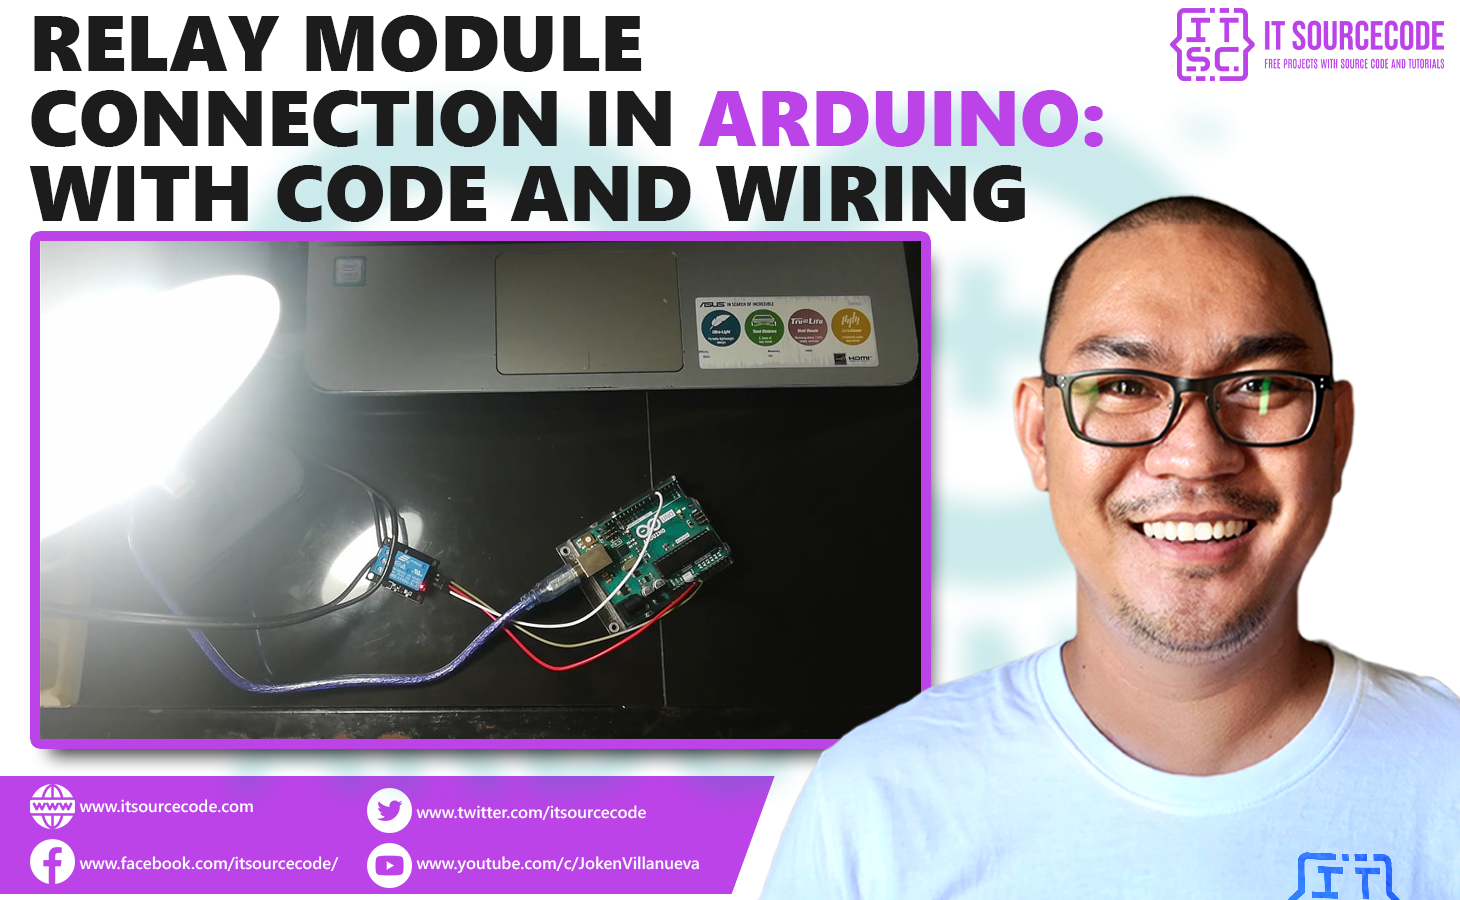 Relay Module Connection in Arduino - Code and Wiring diagram